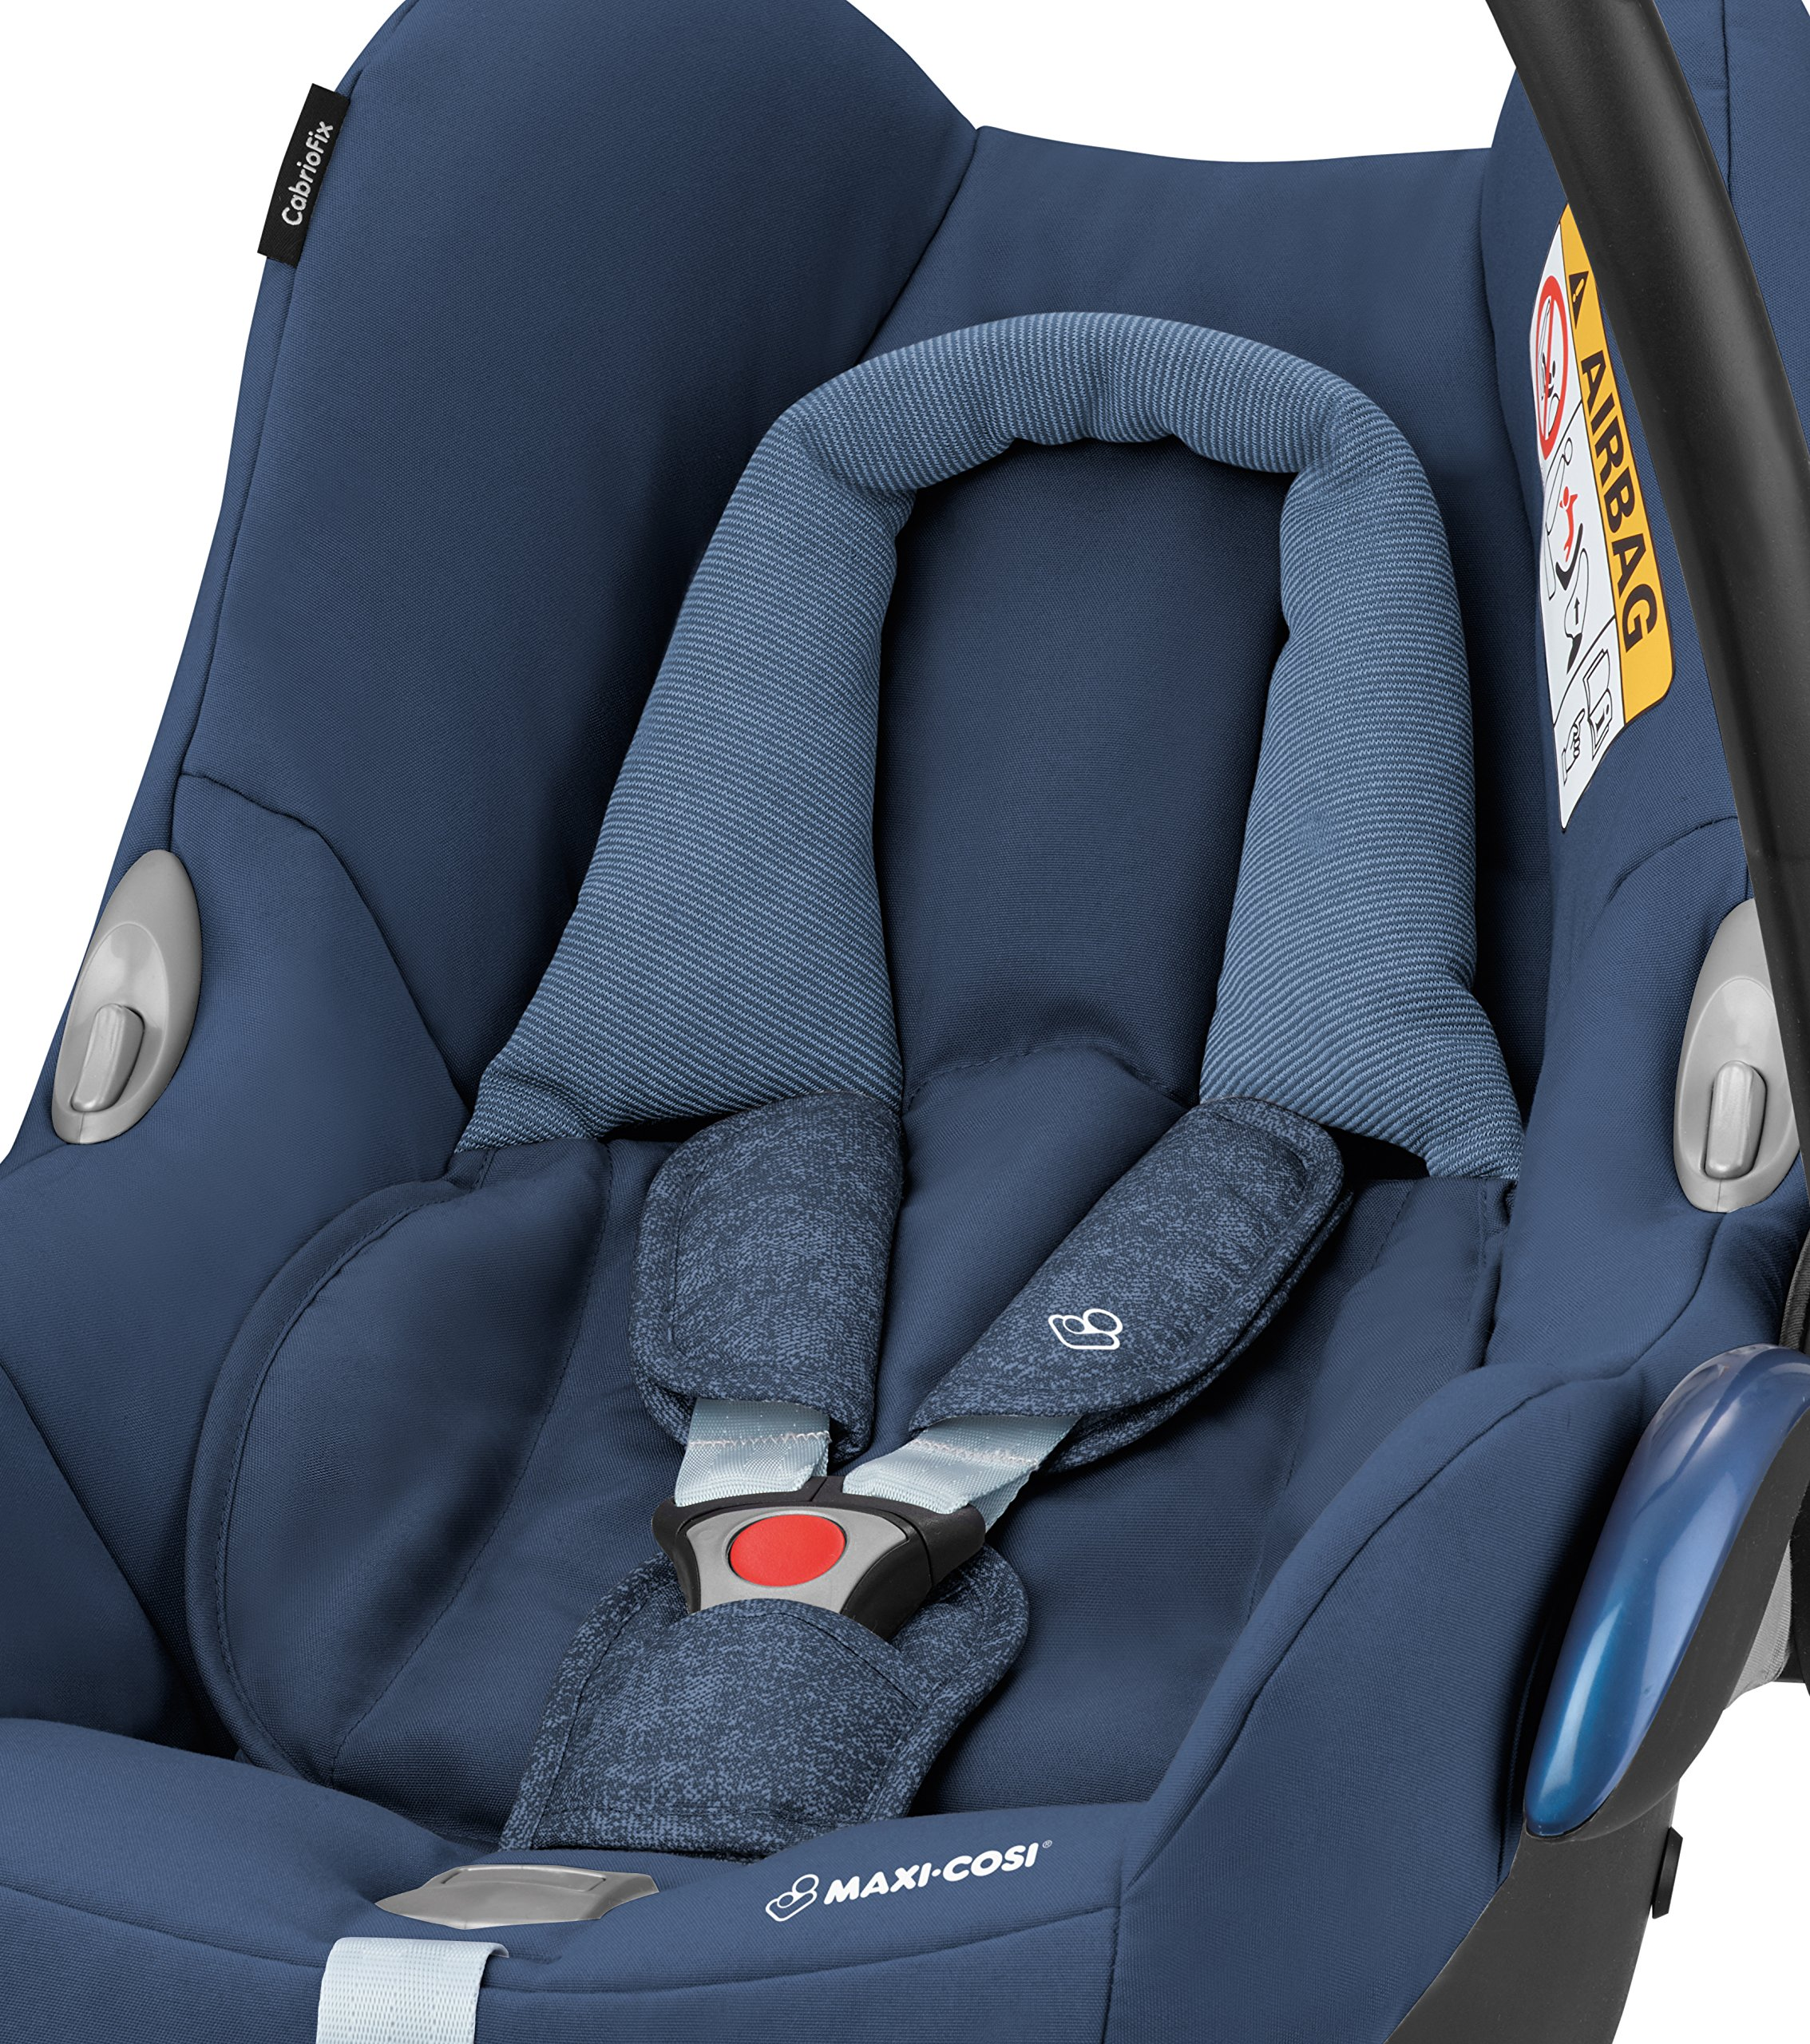 Maxi-Cosi Cabriofix Group 0+ Car Seat, Nomad Blue with EasyFix Car Seat Base, Isofix and Belt Maxi-Cosi Optimal side impact protection: maxi-cost's side protection system technology features in the wings of the car seat to reduce the risk of injury in a side impact collision Click-and-go installation: quick and easy installation with any maxi-cost base unit Flexible travel system: compatible with a variety of pushchairs including quinsy and maxi-cost pushchairs 6